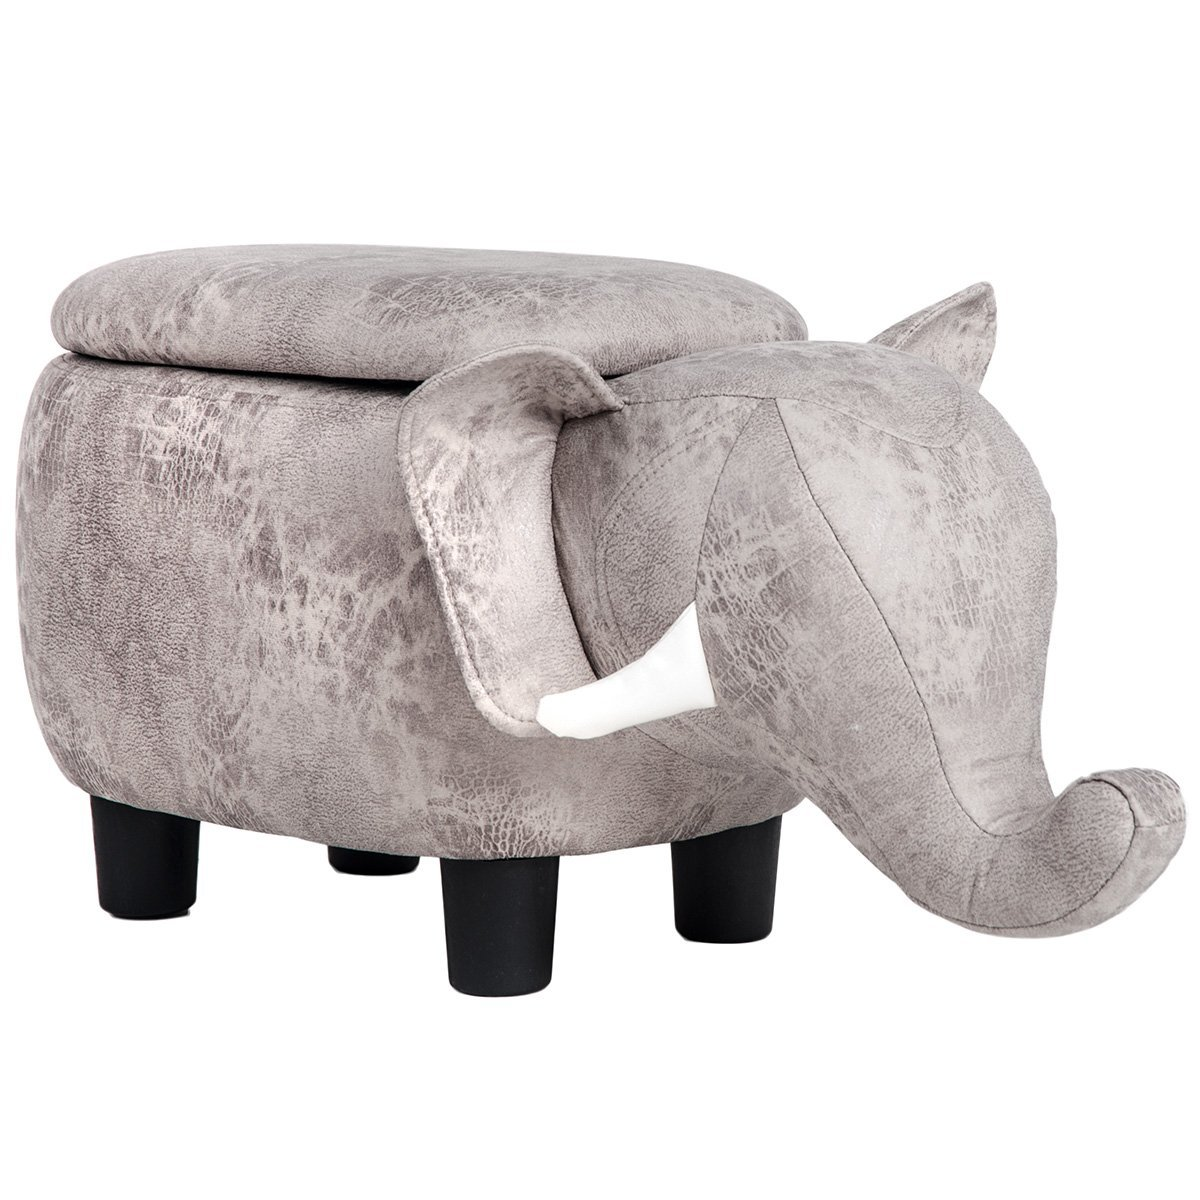 Merax Have-Fun Series Upholstered Ride-on Storage Ottoman Footrest Stool with Vivid Adorable Animal-Like Features (Gray Elephant)